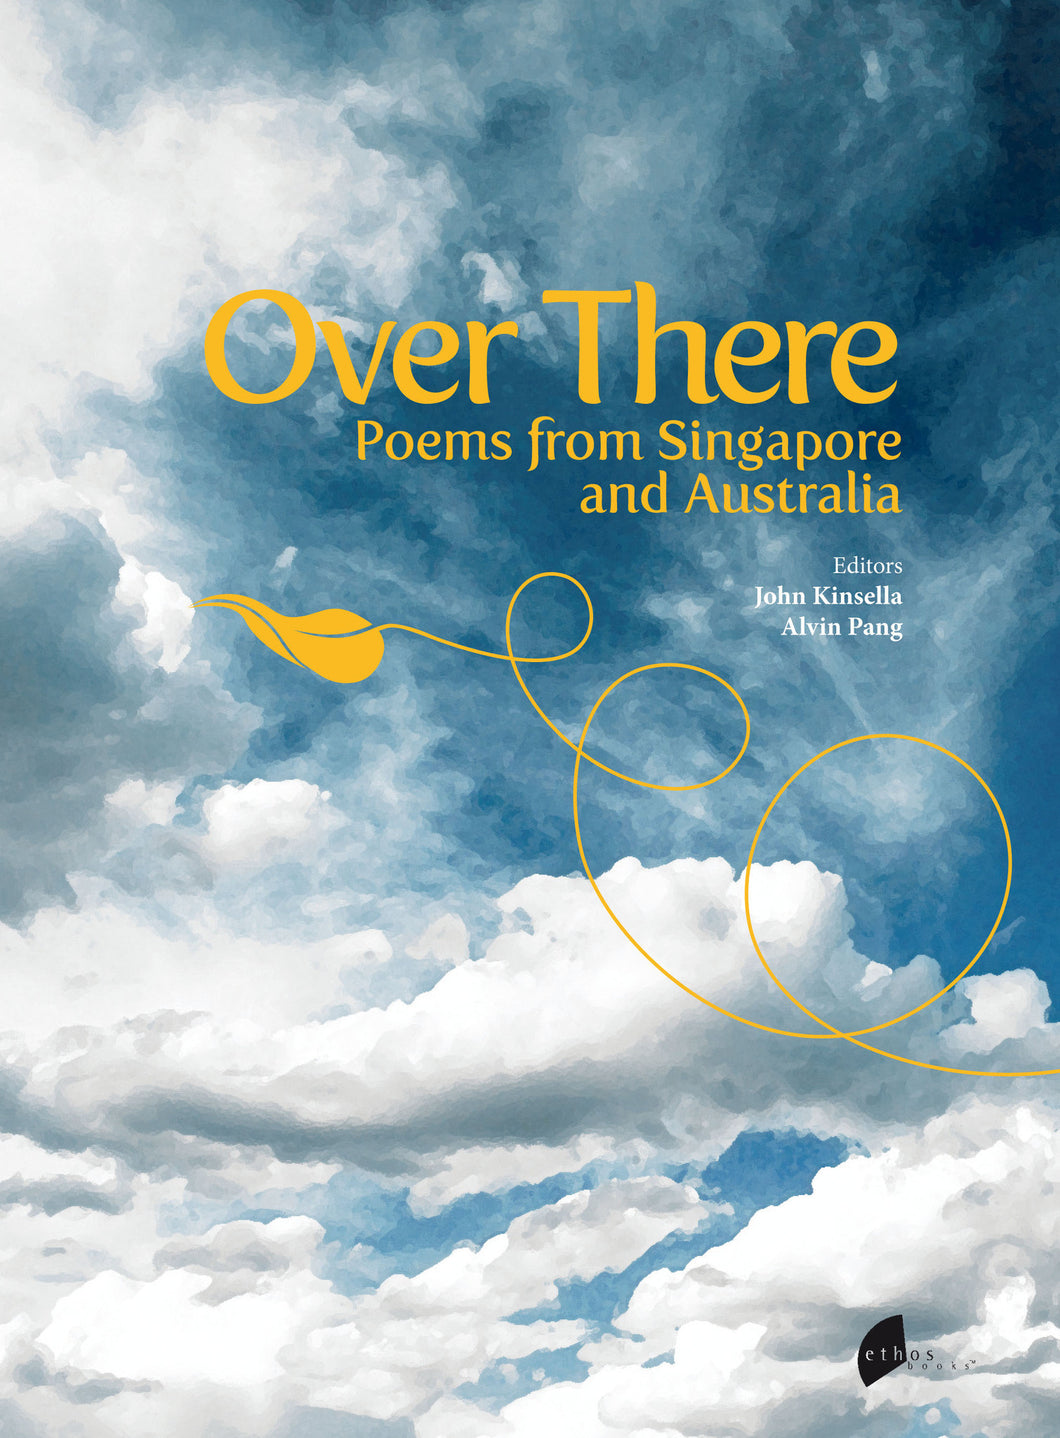 Over There: Poems From Singapore and Australia - Ethos Books